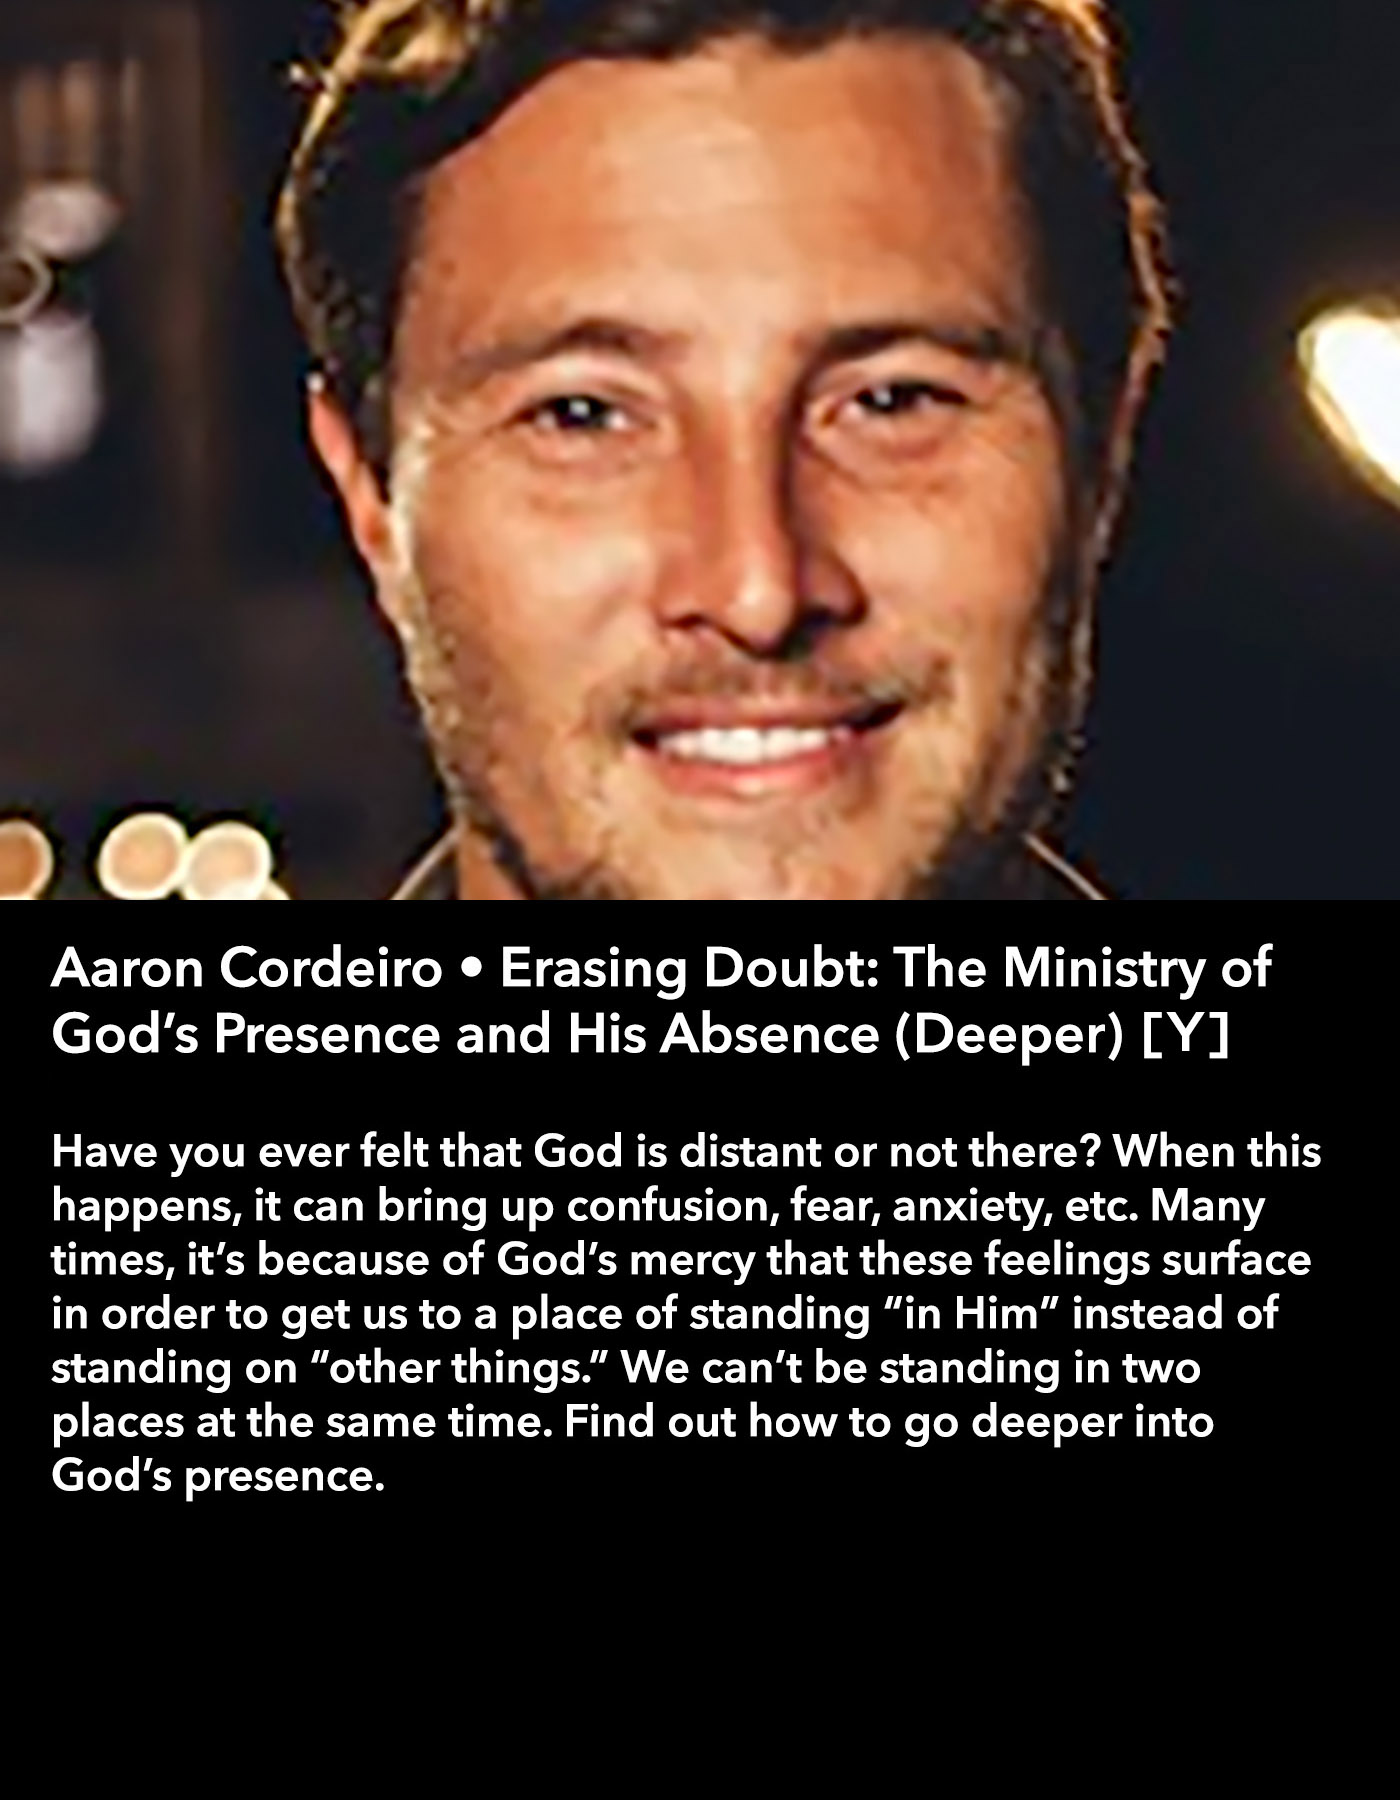 Aaron Cordeiro • Erasing Doubt: The Ministry of God's Presence and His Absence (Deeper) [Y] • Friday Afternoon, March 17 • 3:30 – 4:45 pm